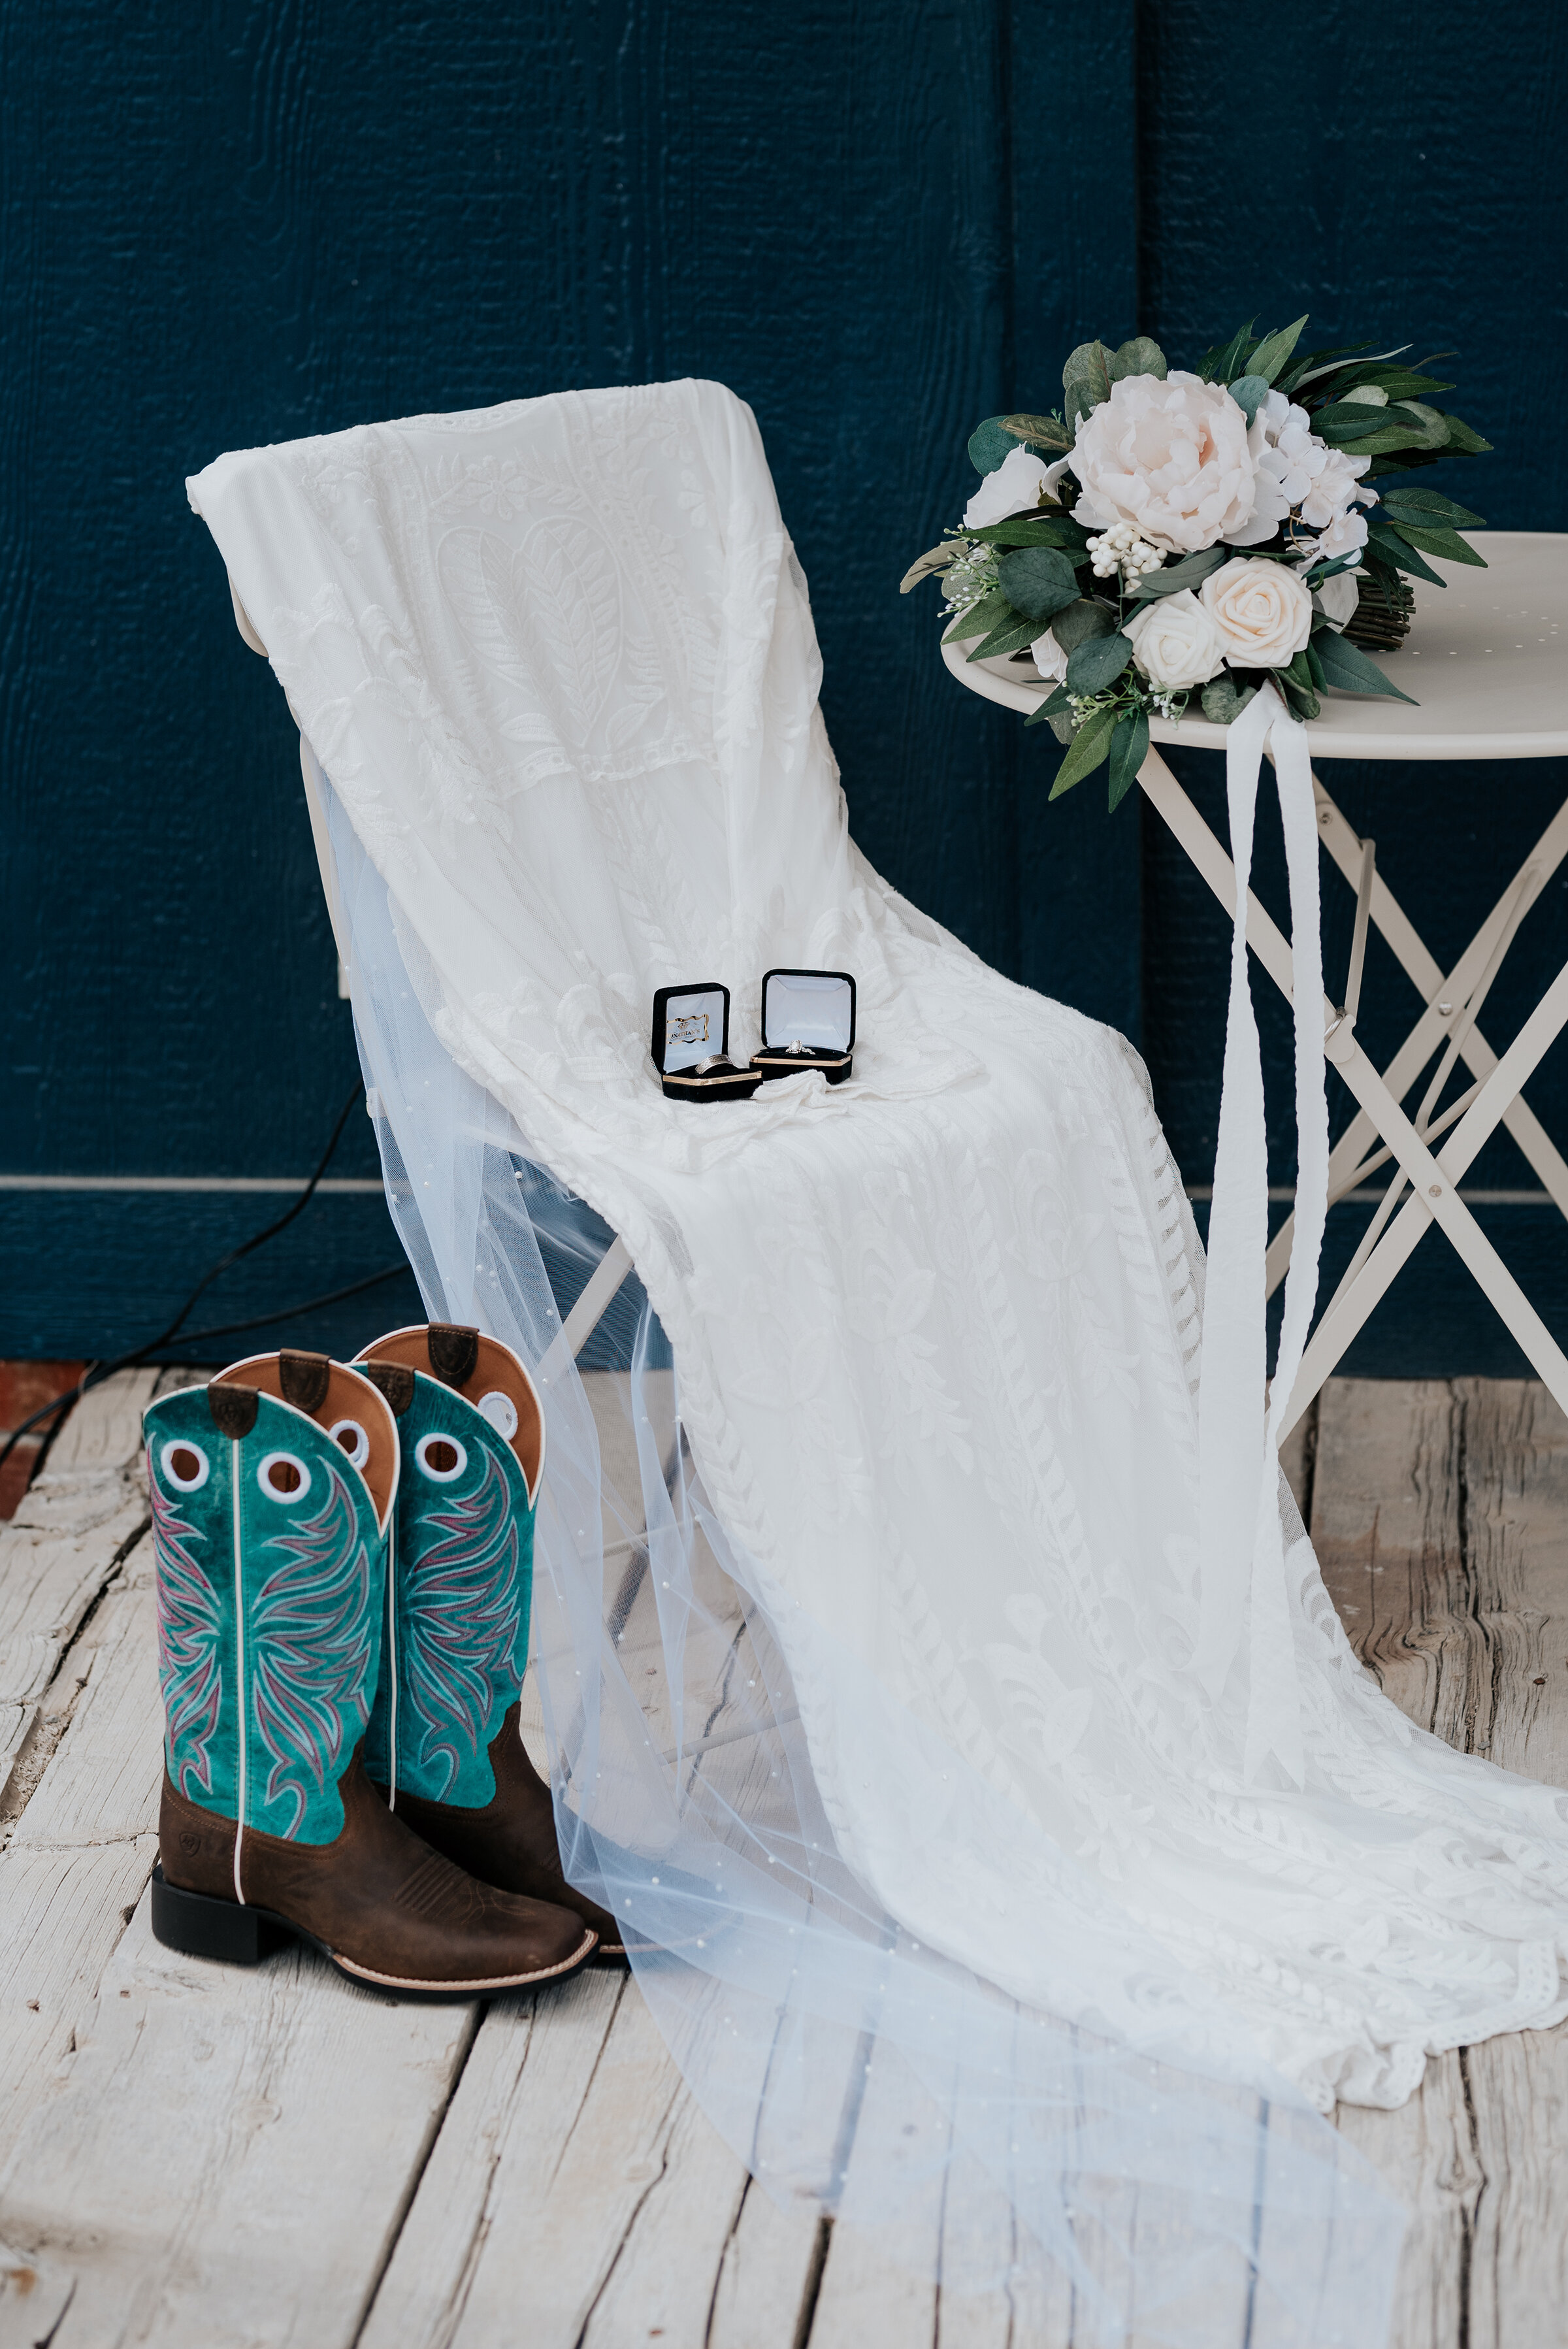 Stunning turquoise blue cowgirl boots with flares of pink accented the gorgeous tule wedding gown the bride wore on her wedding day. Wedding day photoshoot in Ephraim Utah photography wedding outdoor location western inspired rustic Airbnb photo aesthetic #ephraimutah #utahphotography #weddingdayphotography #gettingmarried #rusticwedding #utahwedding #westernstyle #weddingphotoshoot